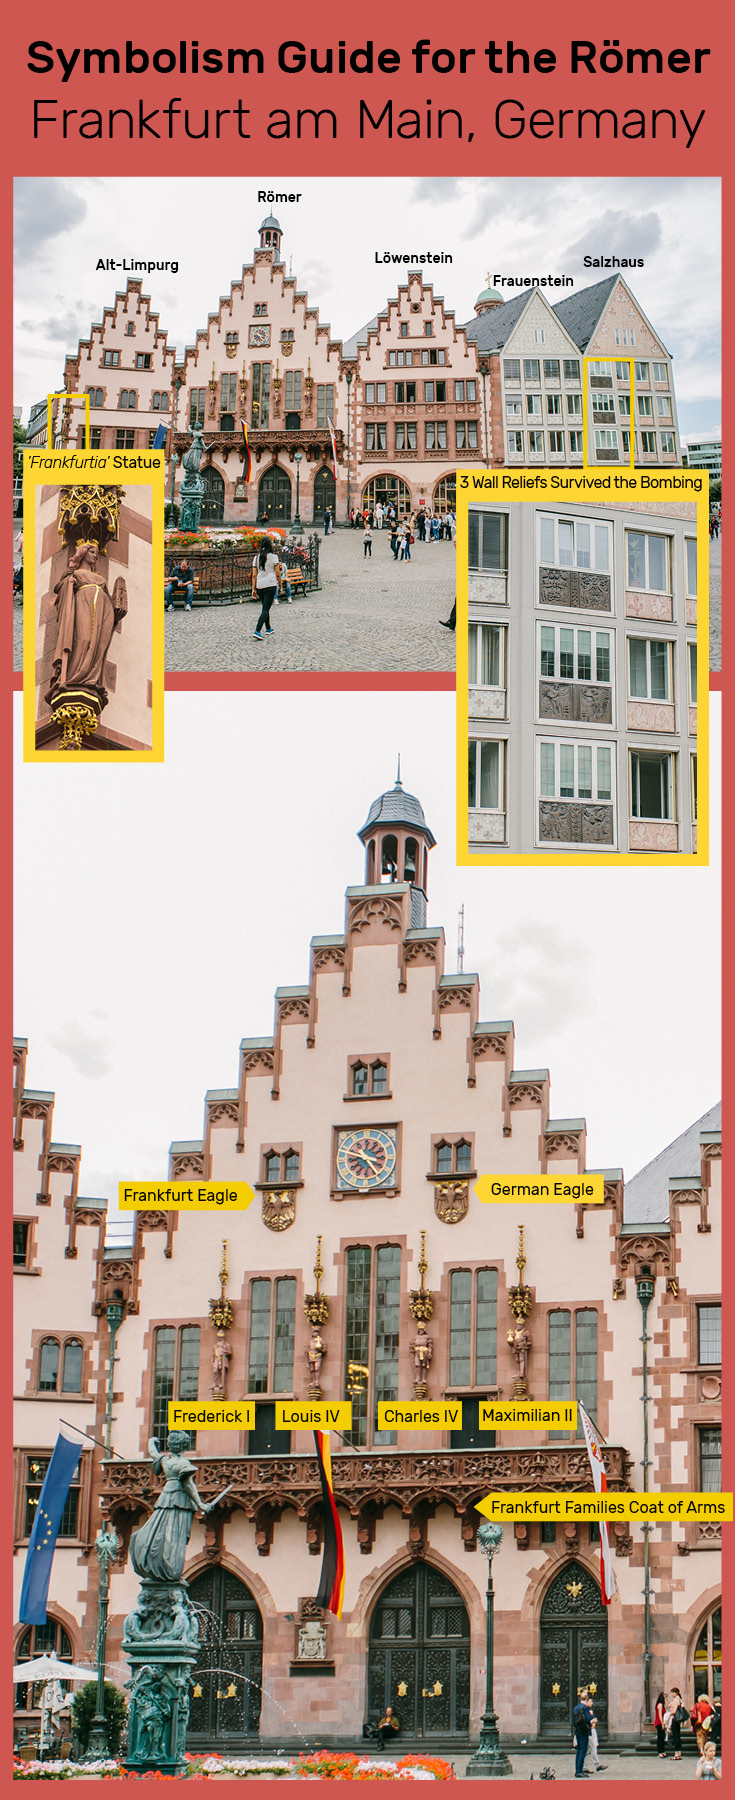 Symbolism Guide for the Roemer | Typical for Gothic Revival, on the Roemer facade in Frankfurt am Main, Germany, you'll see pointed arches, decorative patterns, and embellished structural elements.